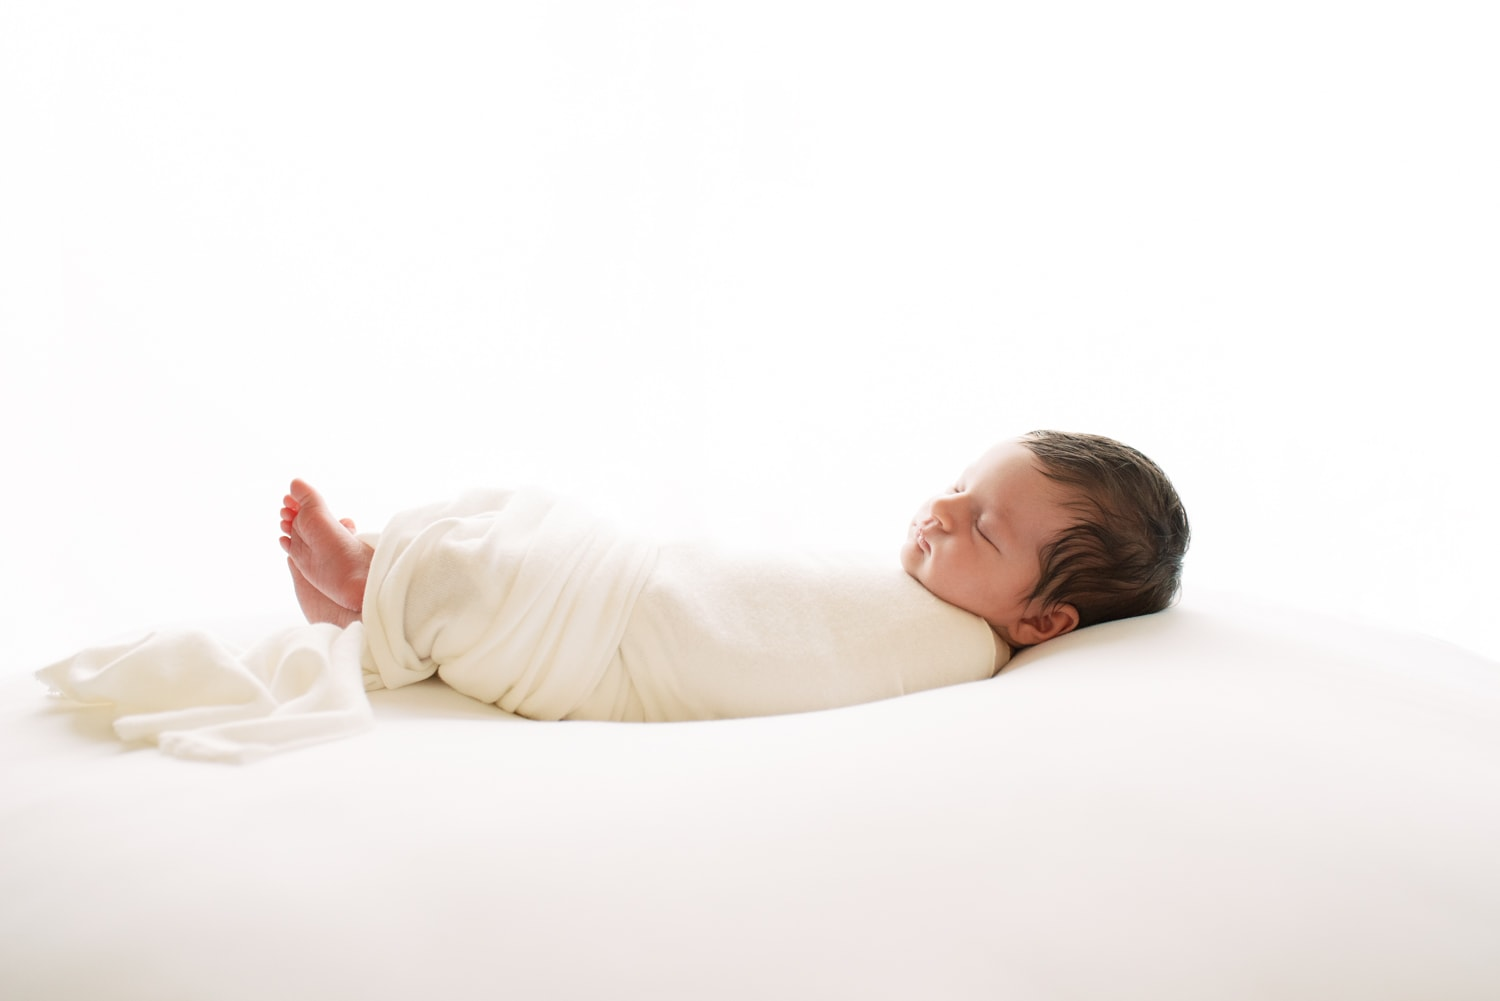 photograph of swaddled newborn in profile